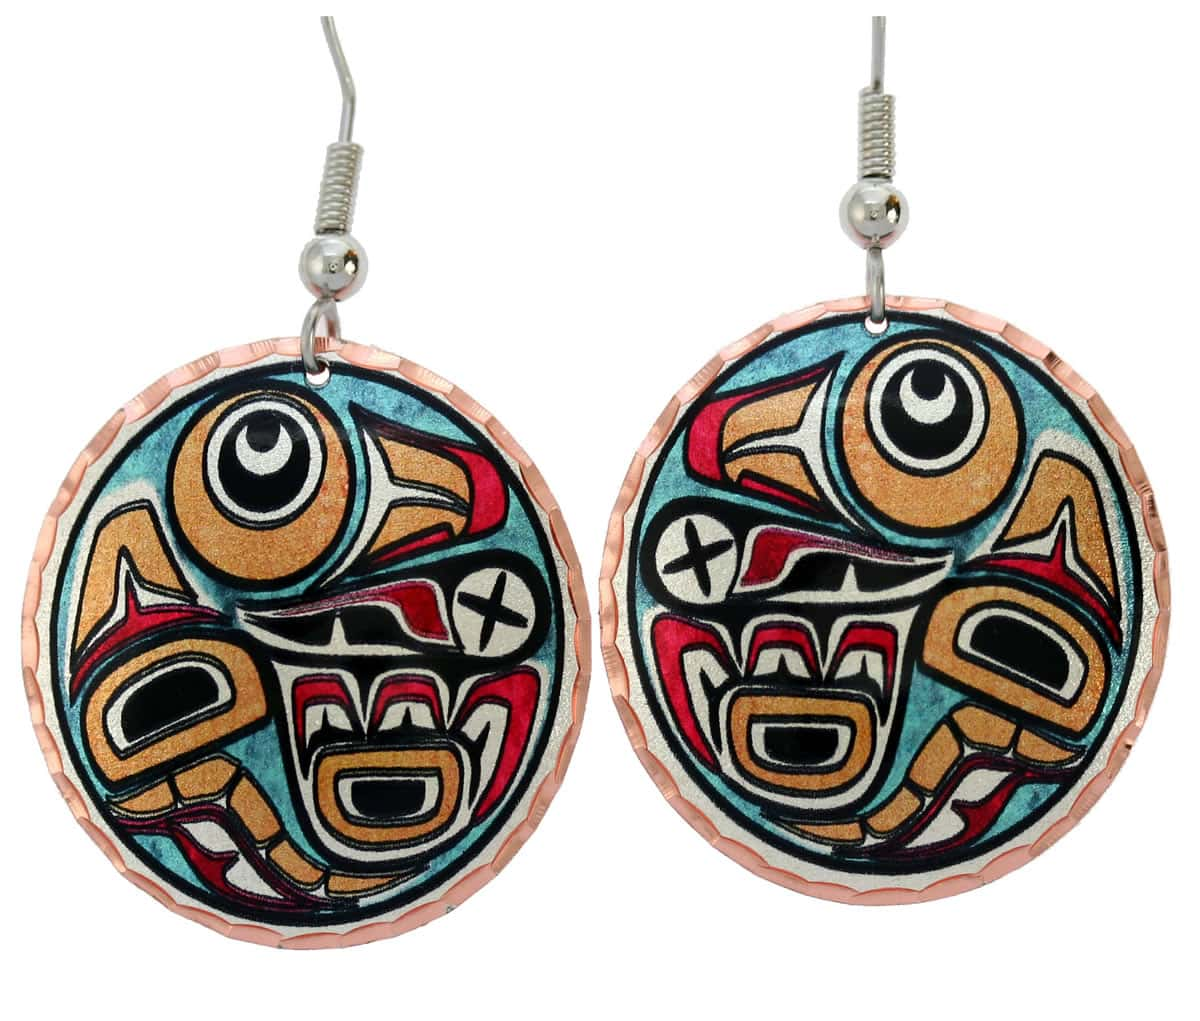 Buy Northwest Native raven earrings inspired by nature Haida Indian art